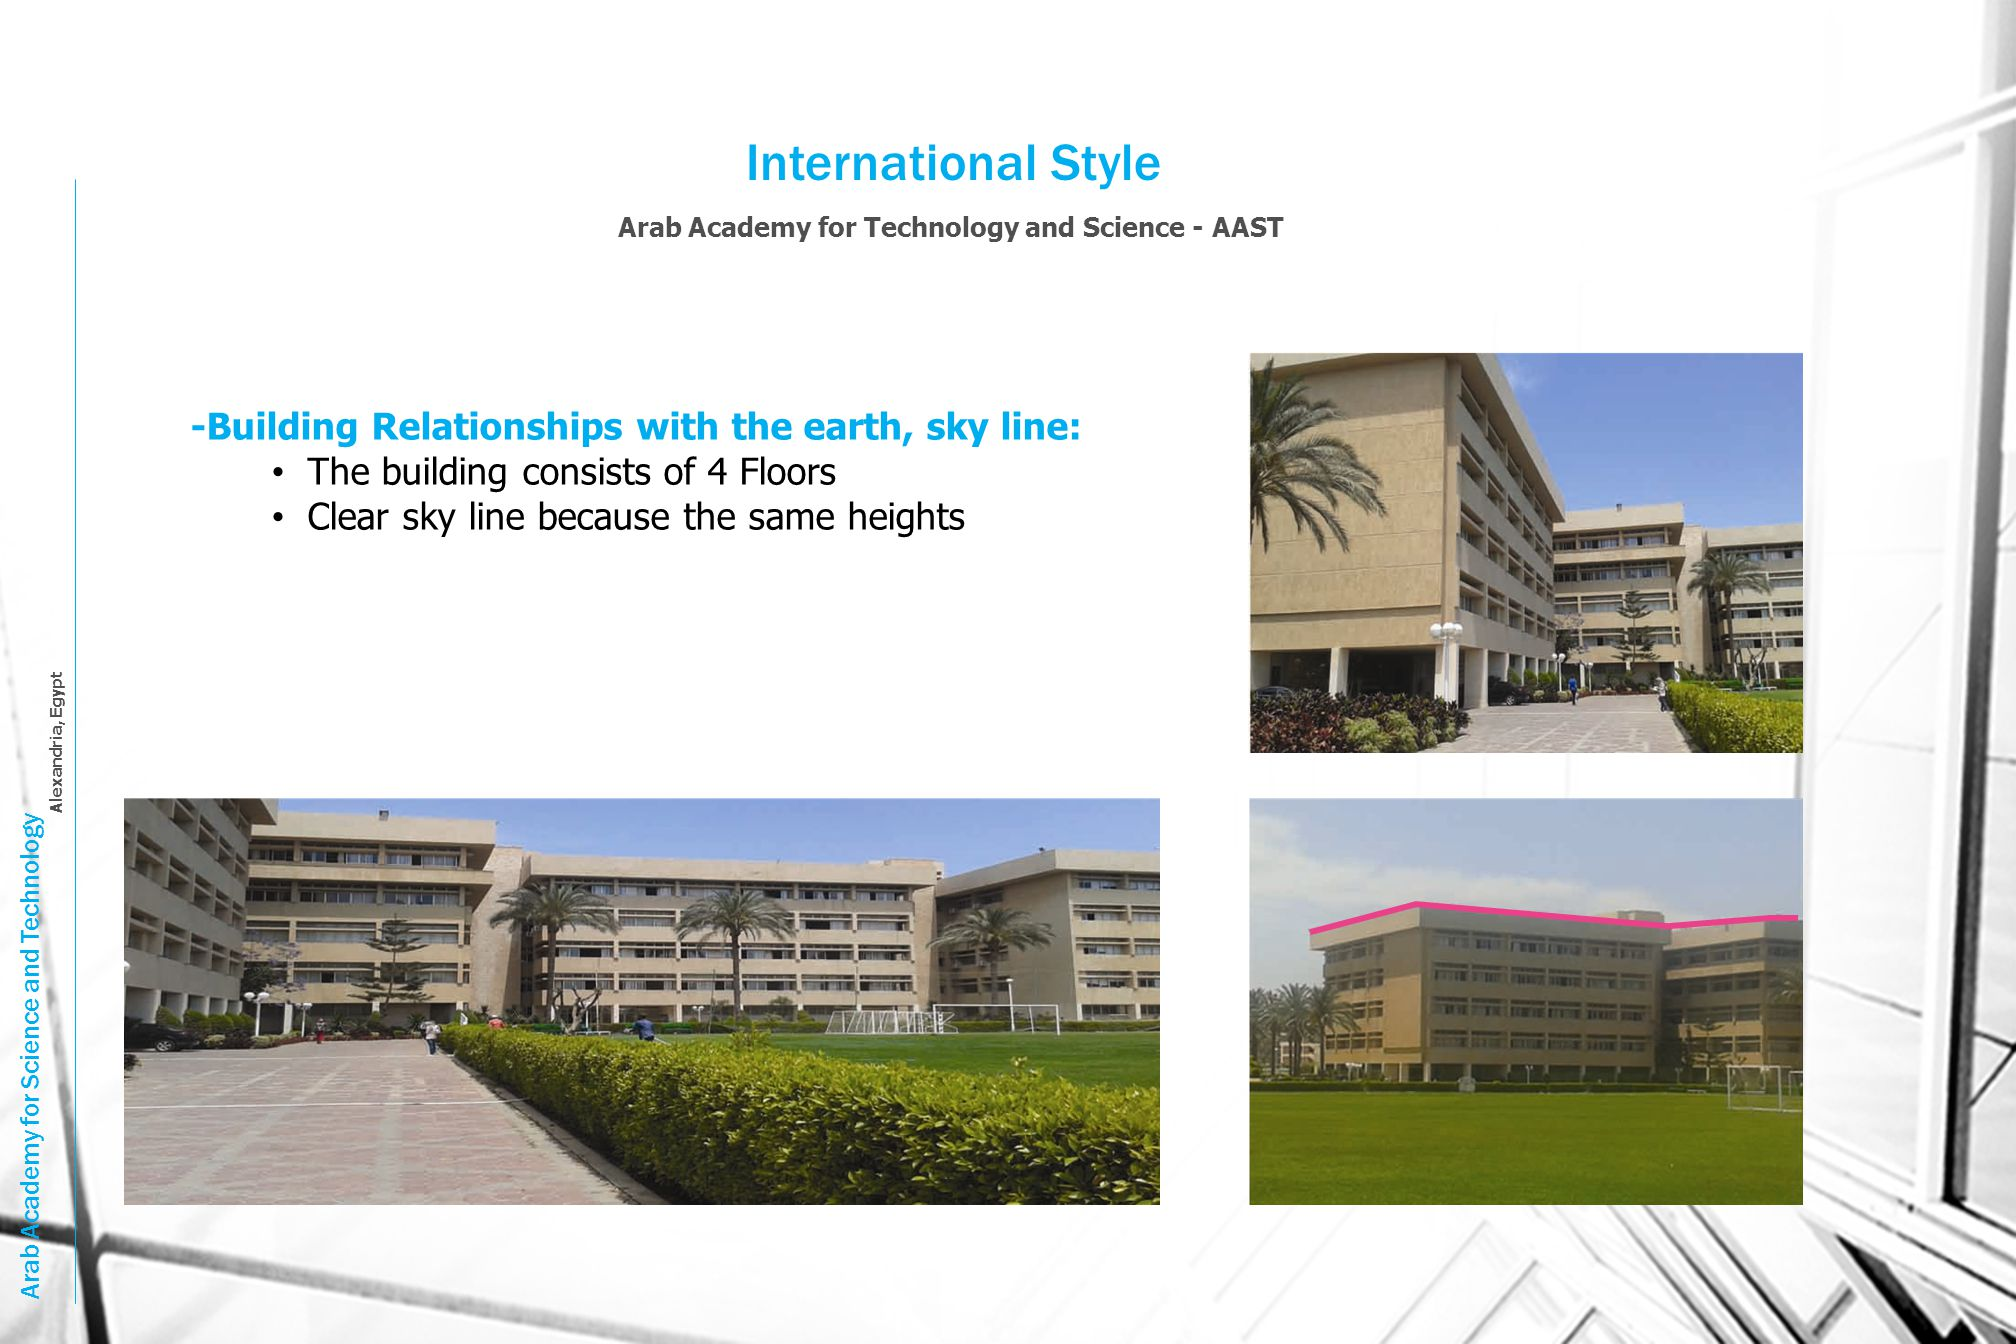 International Style -Building Relationships with the earth, sky line: